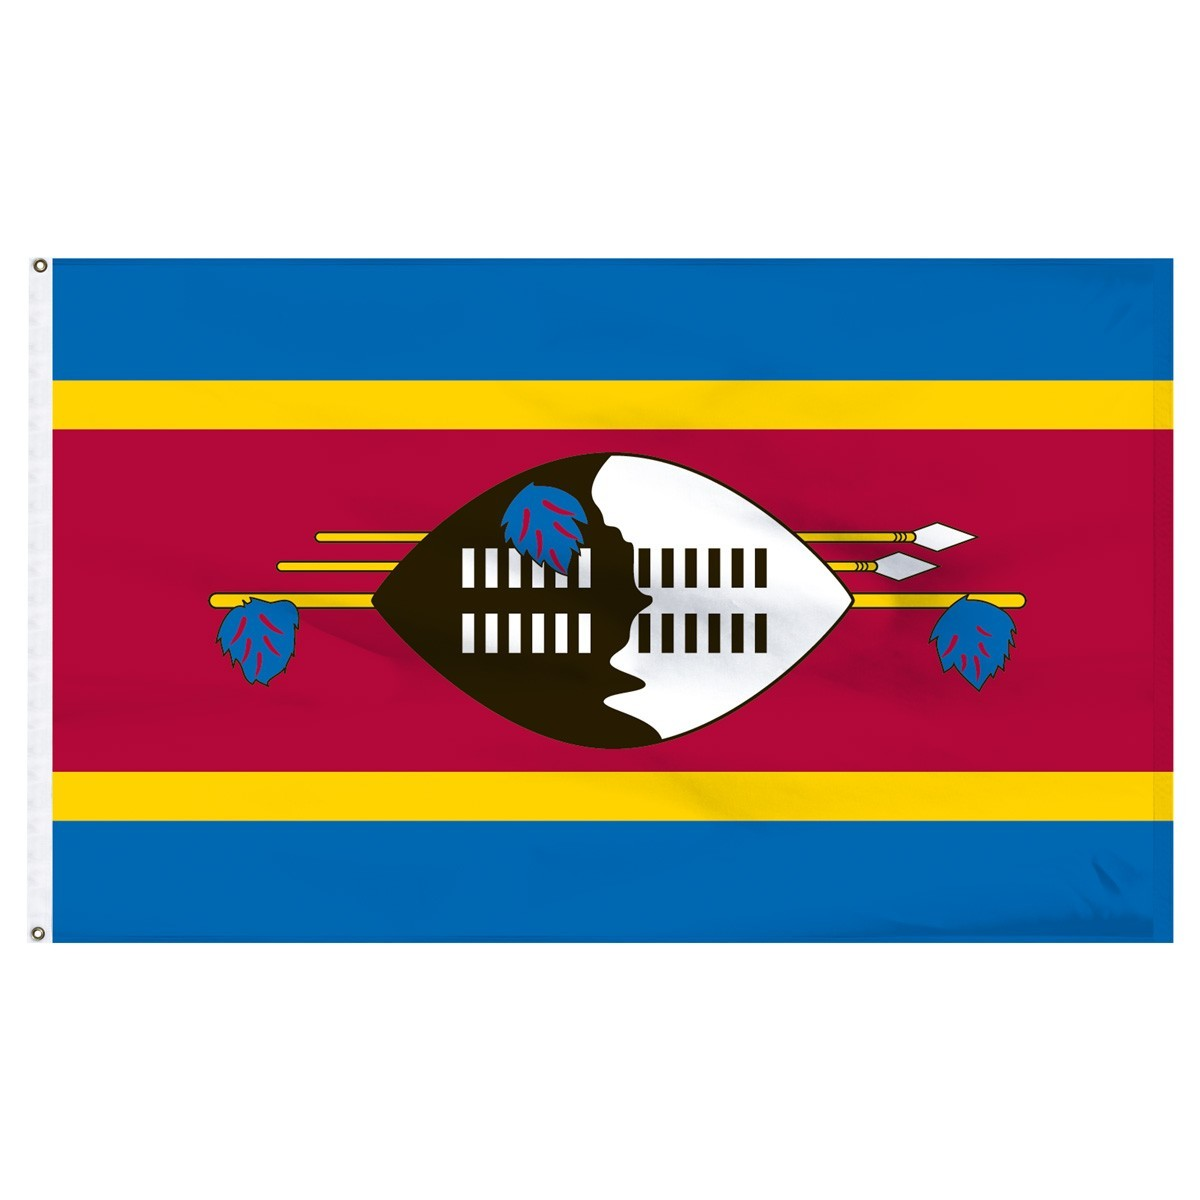 Swaziland 3' x 5' Outdoor Nylon Flag